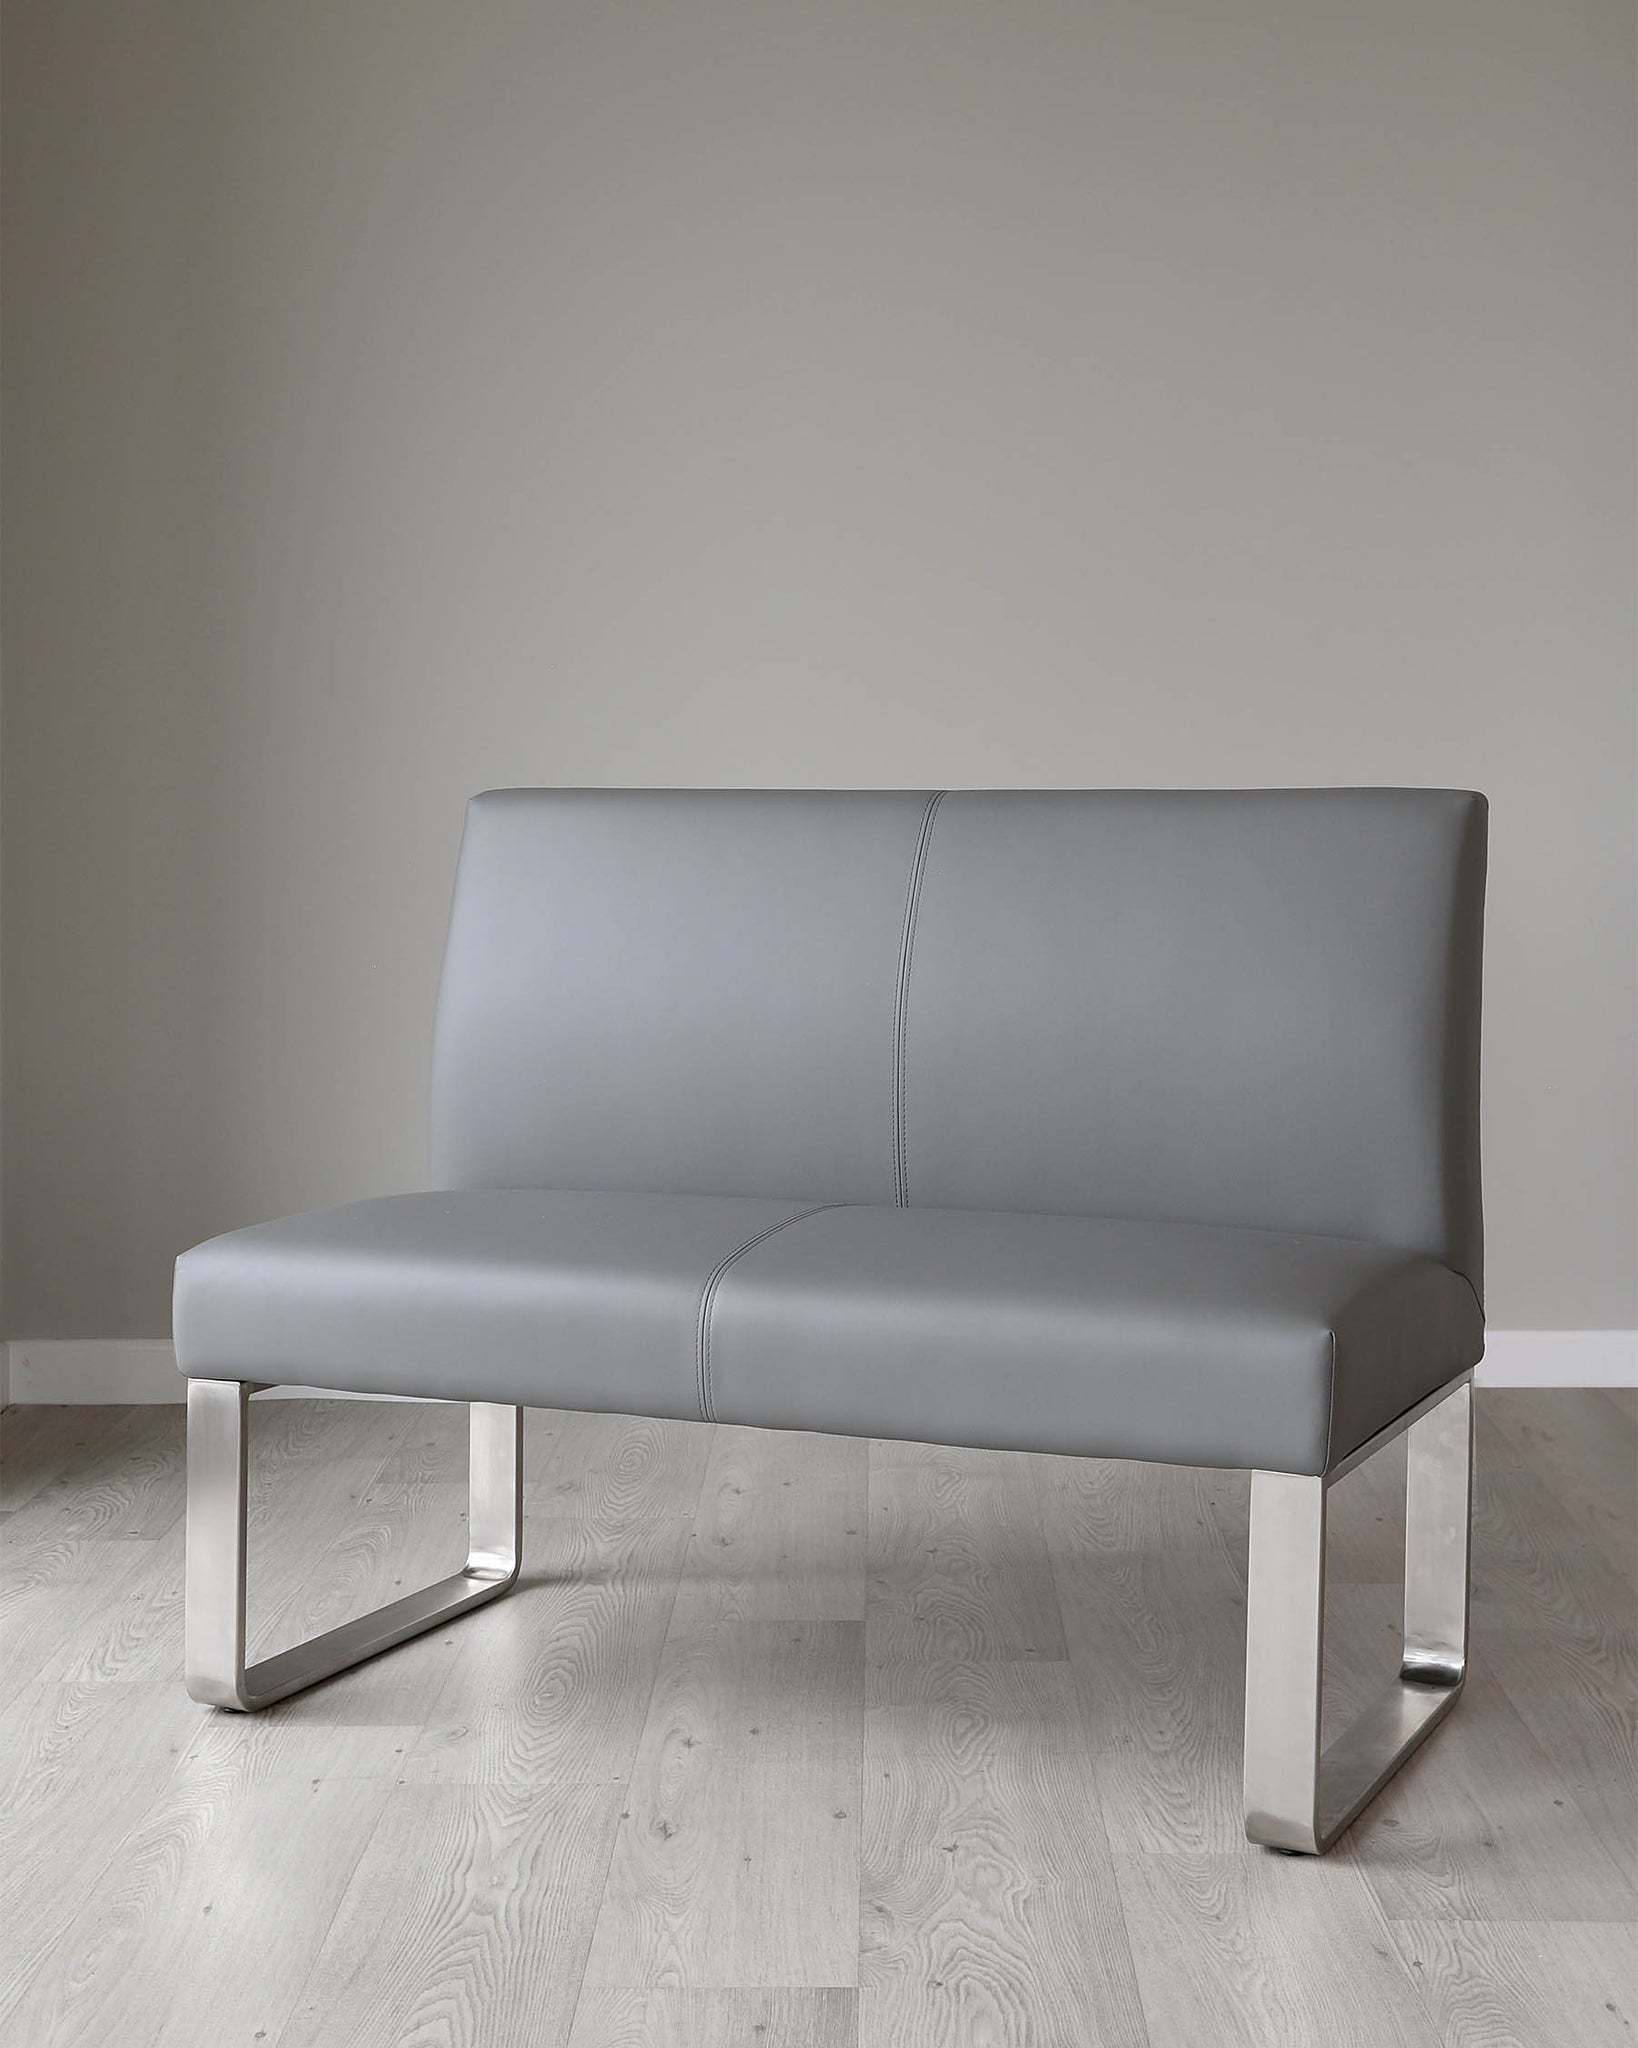 Loop 2 Seater Grey Faux Leather & Stainless Steel Bench With Backrest